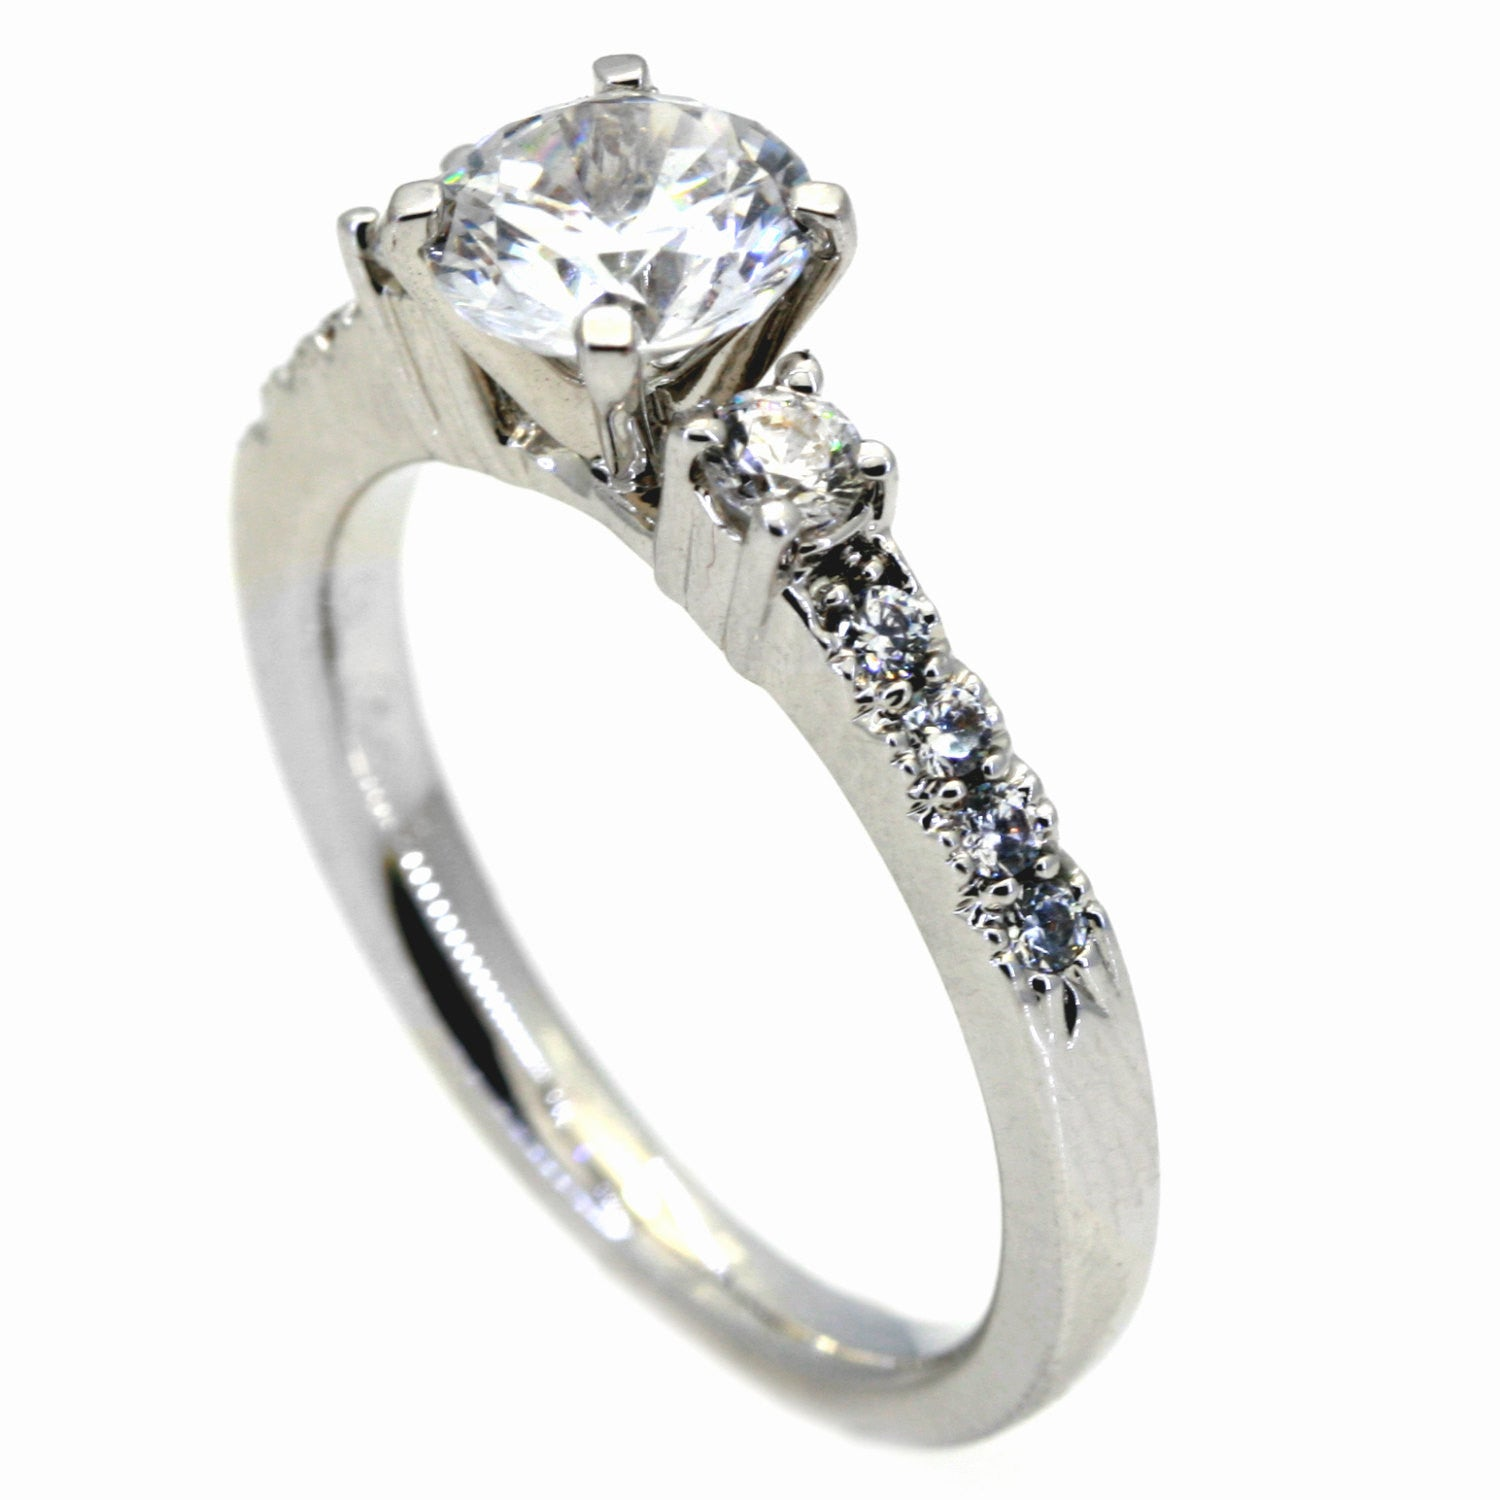 14 Karat White Gold Engagement Ring, Unique, For 1 Carat Round Center Stone,